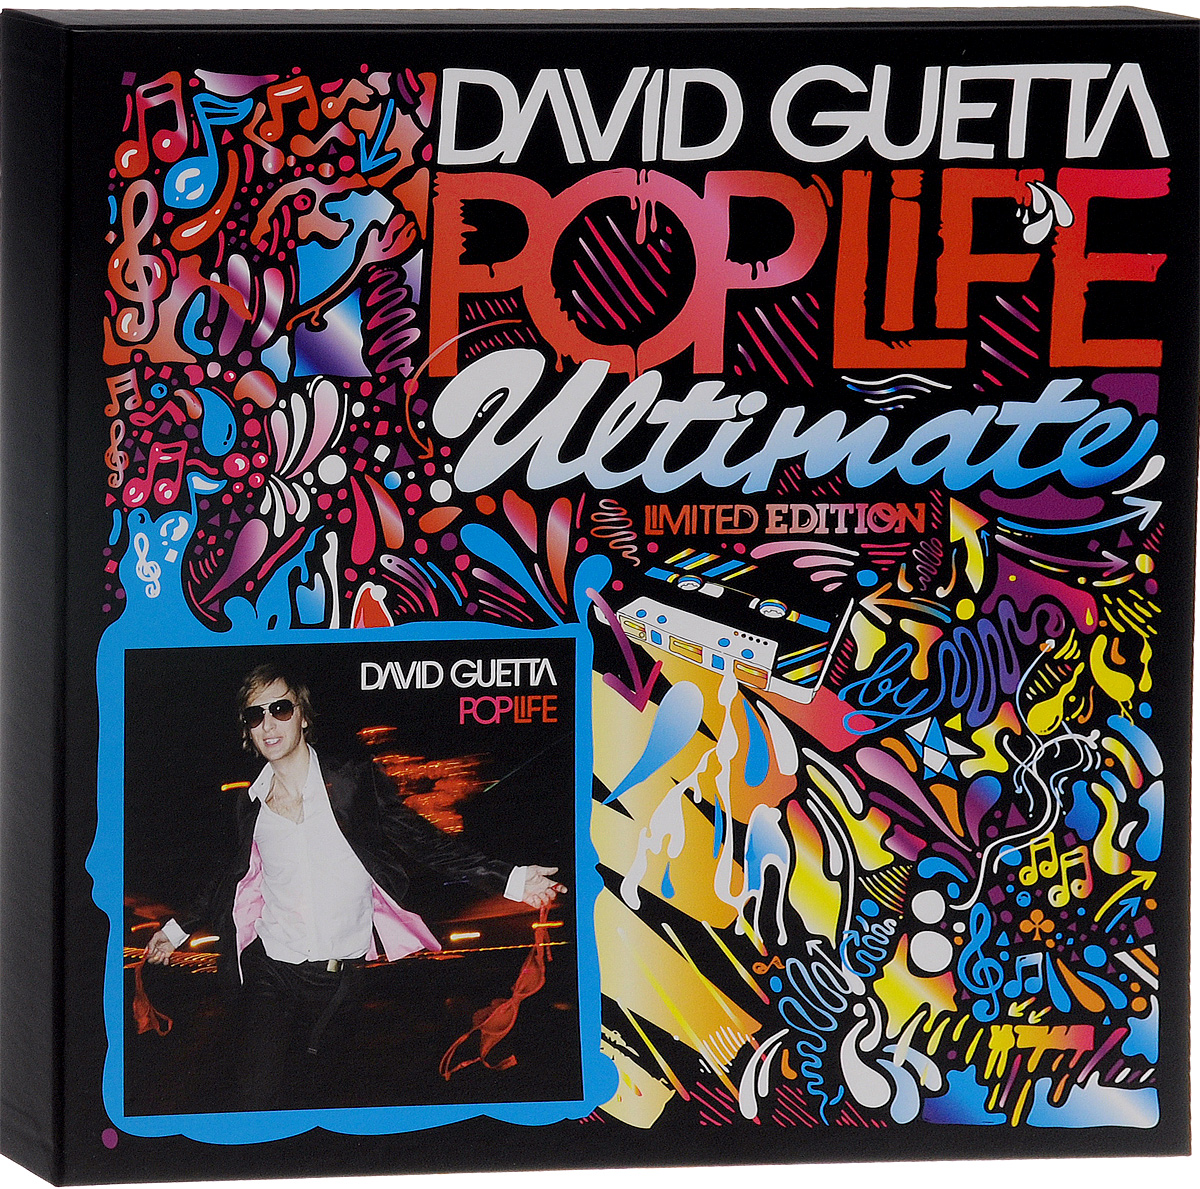 Дэвид Гетта David Guetta. Pop Life Ultimate. Limited Edition (3 CD + DVD + LP) дэвид гетта david guetta original album series 5 cd